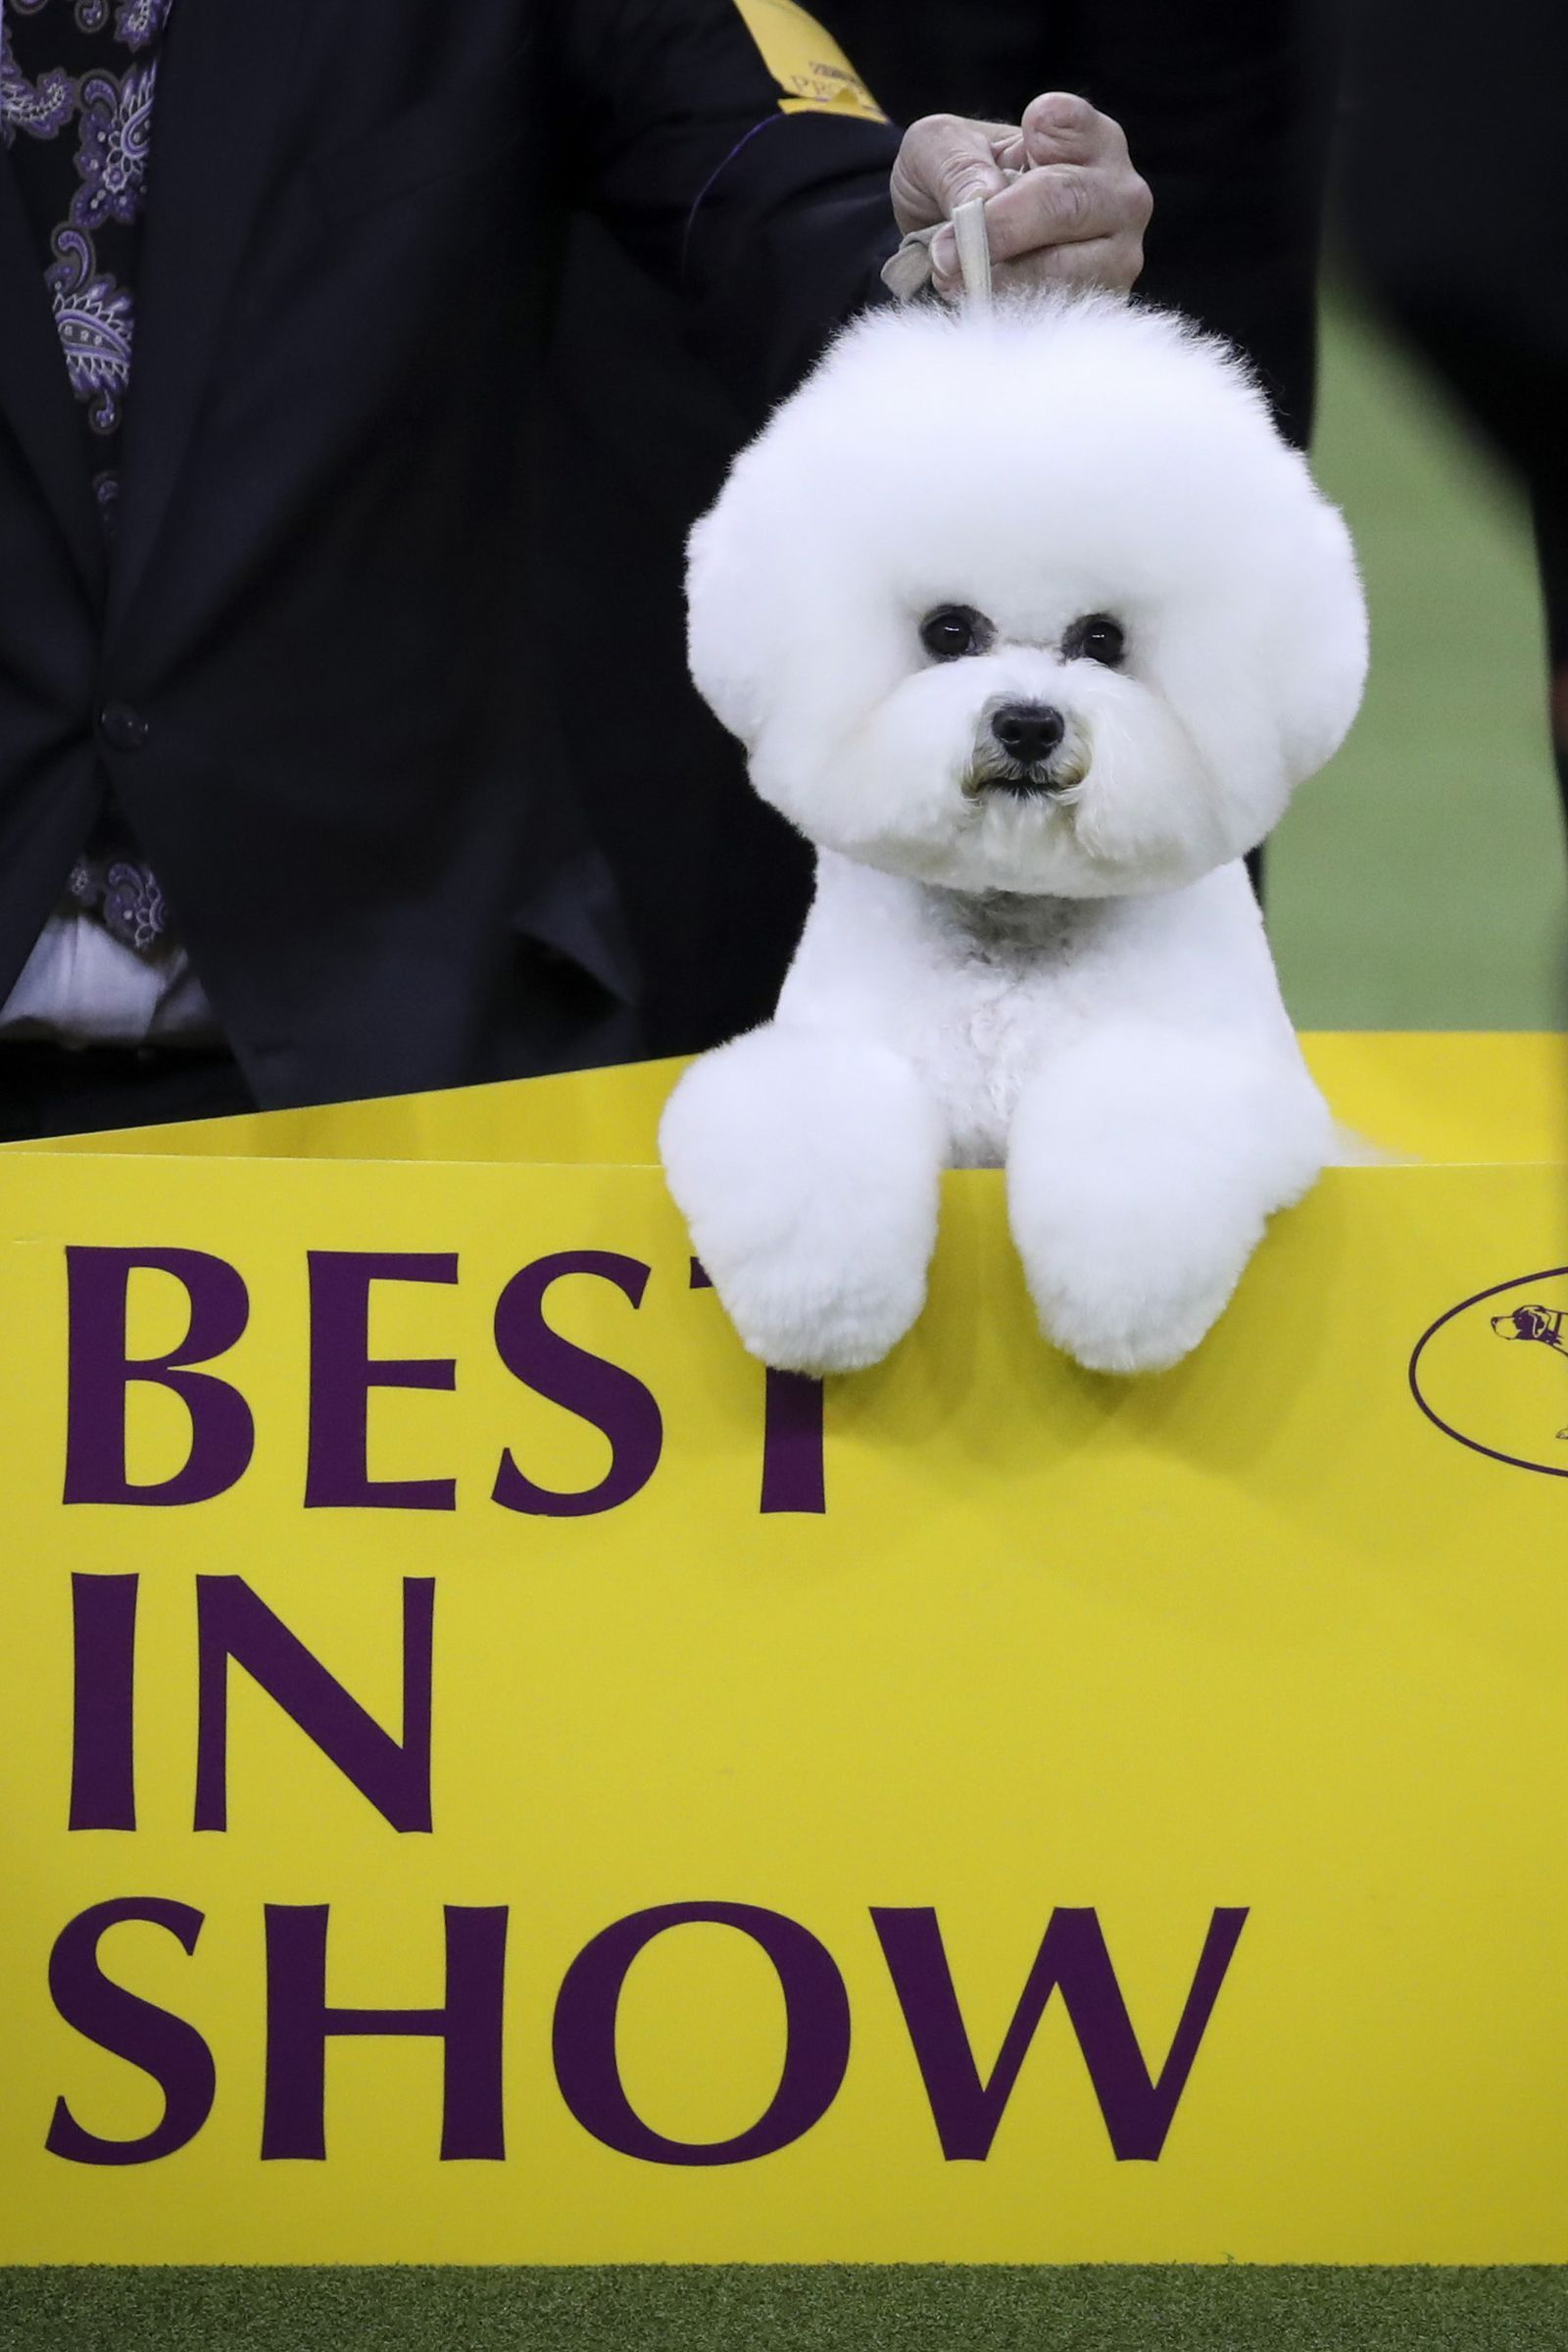 31 Cute Pictures Of All Star Dogs Just In Case You Needed A